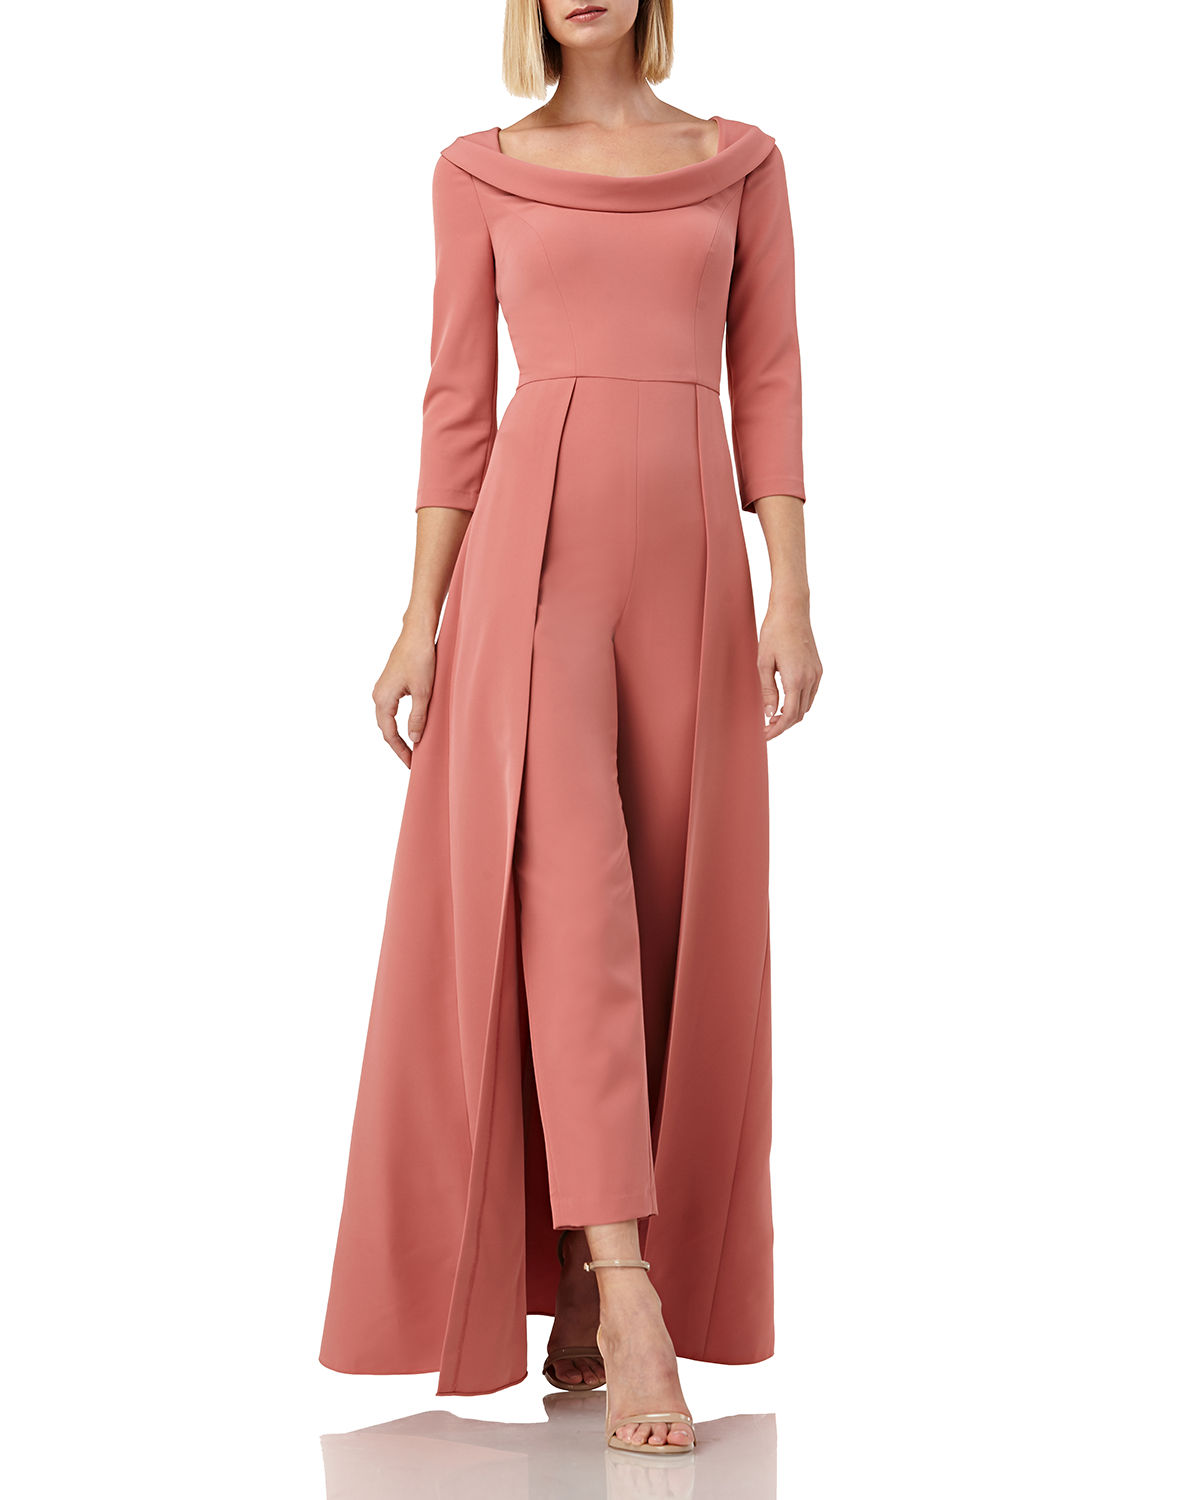 Kay Unger Suits WALK THRU BOAT-NECK 3/4-SLEEVE JUMPSUIT W/ CREPE OVERLAY SKIRT